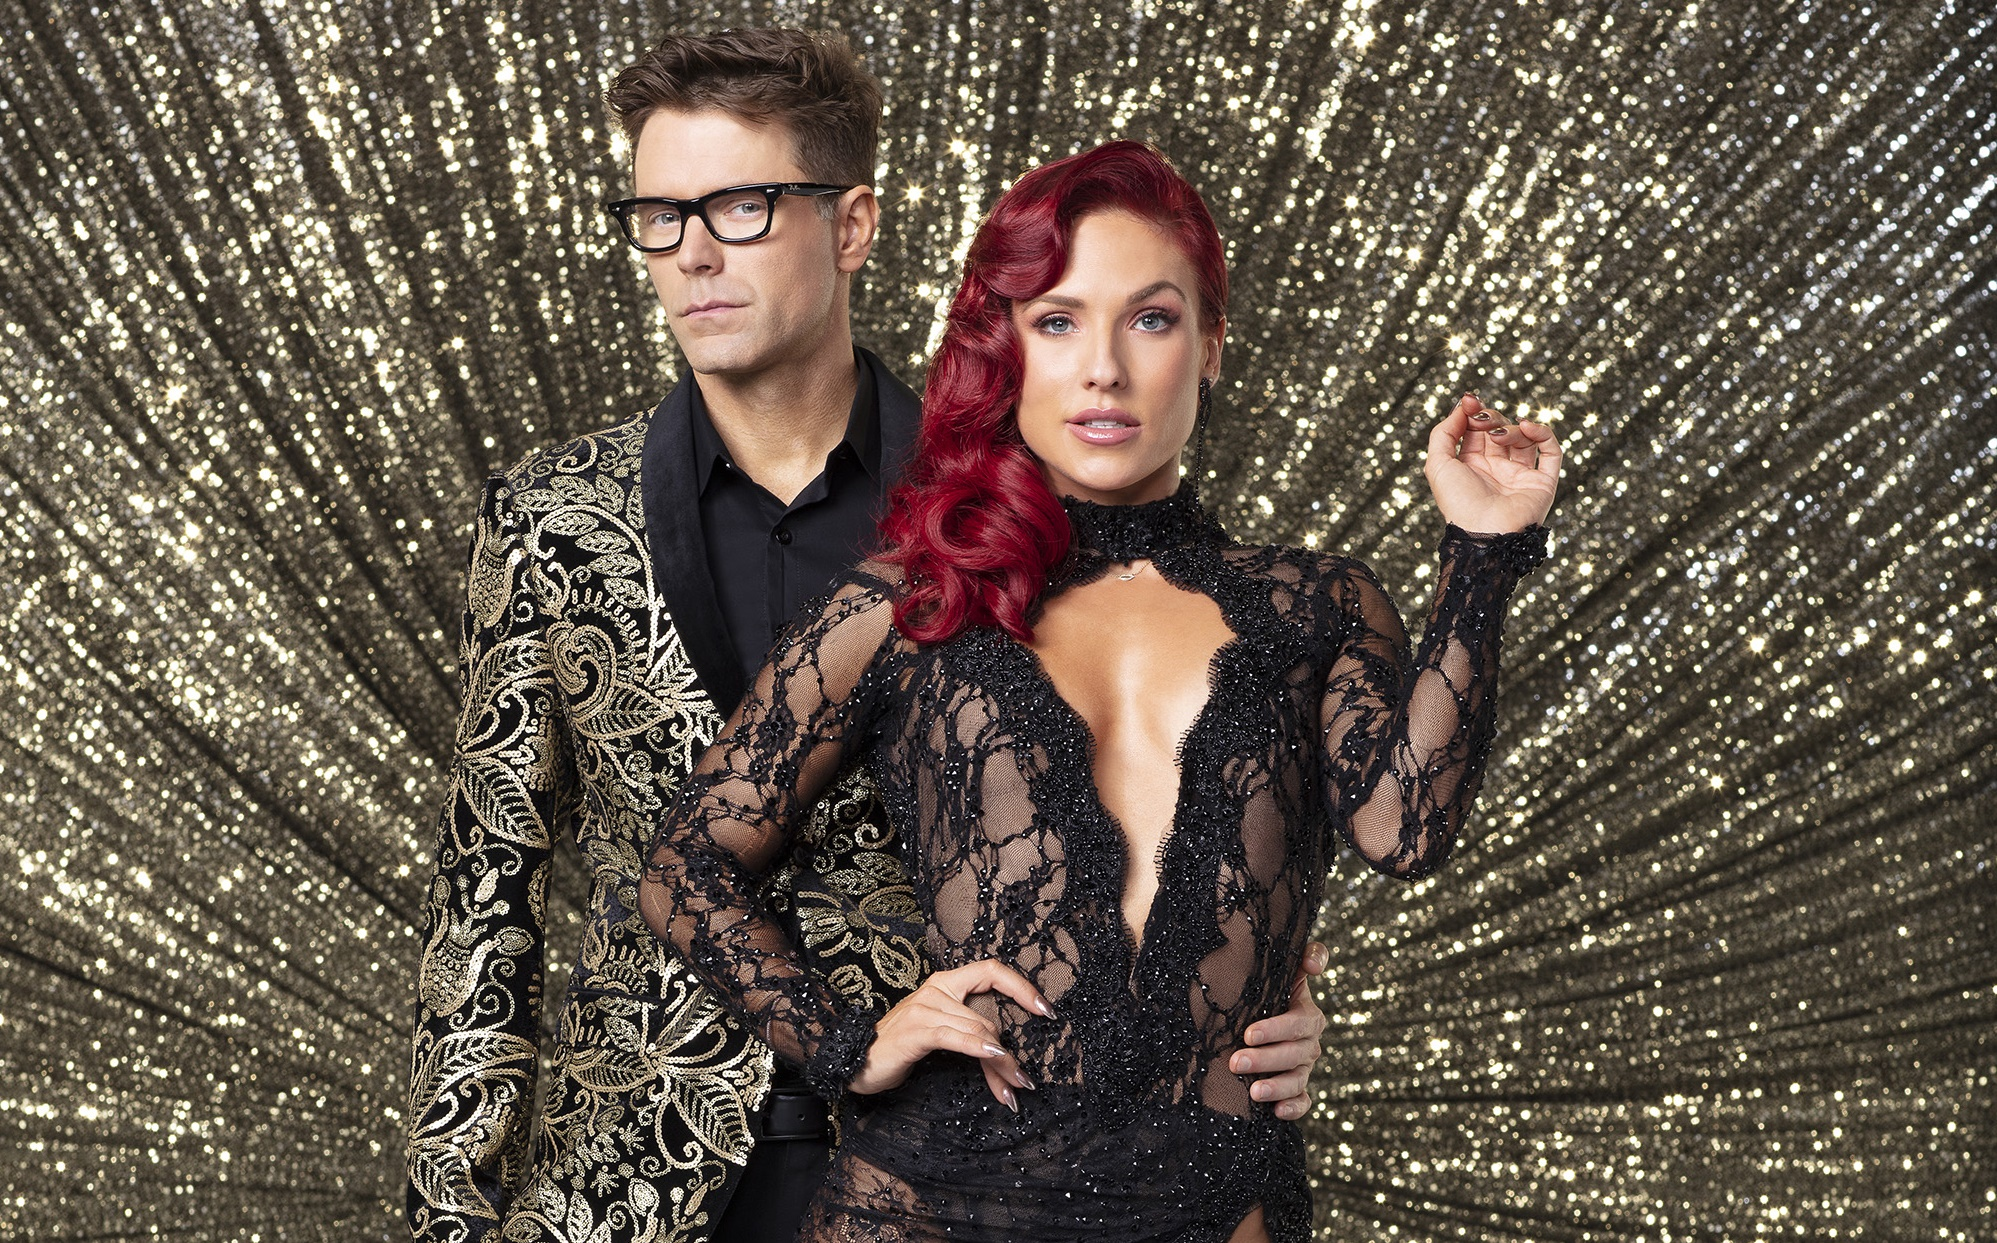 Bobby Bones Shares First Glimpse at 'Dancing With the Stars' Training After Cast Announcement